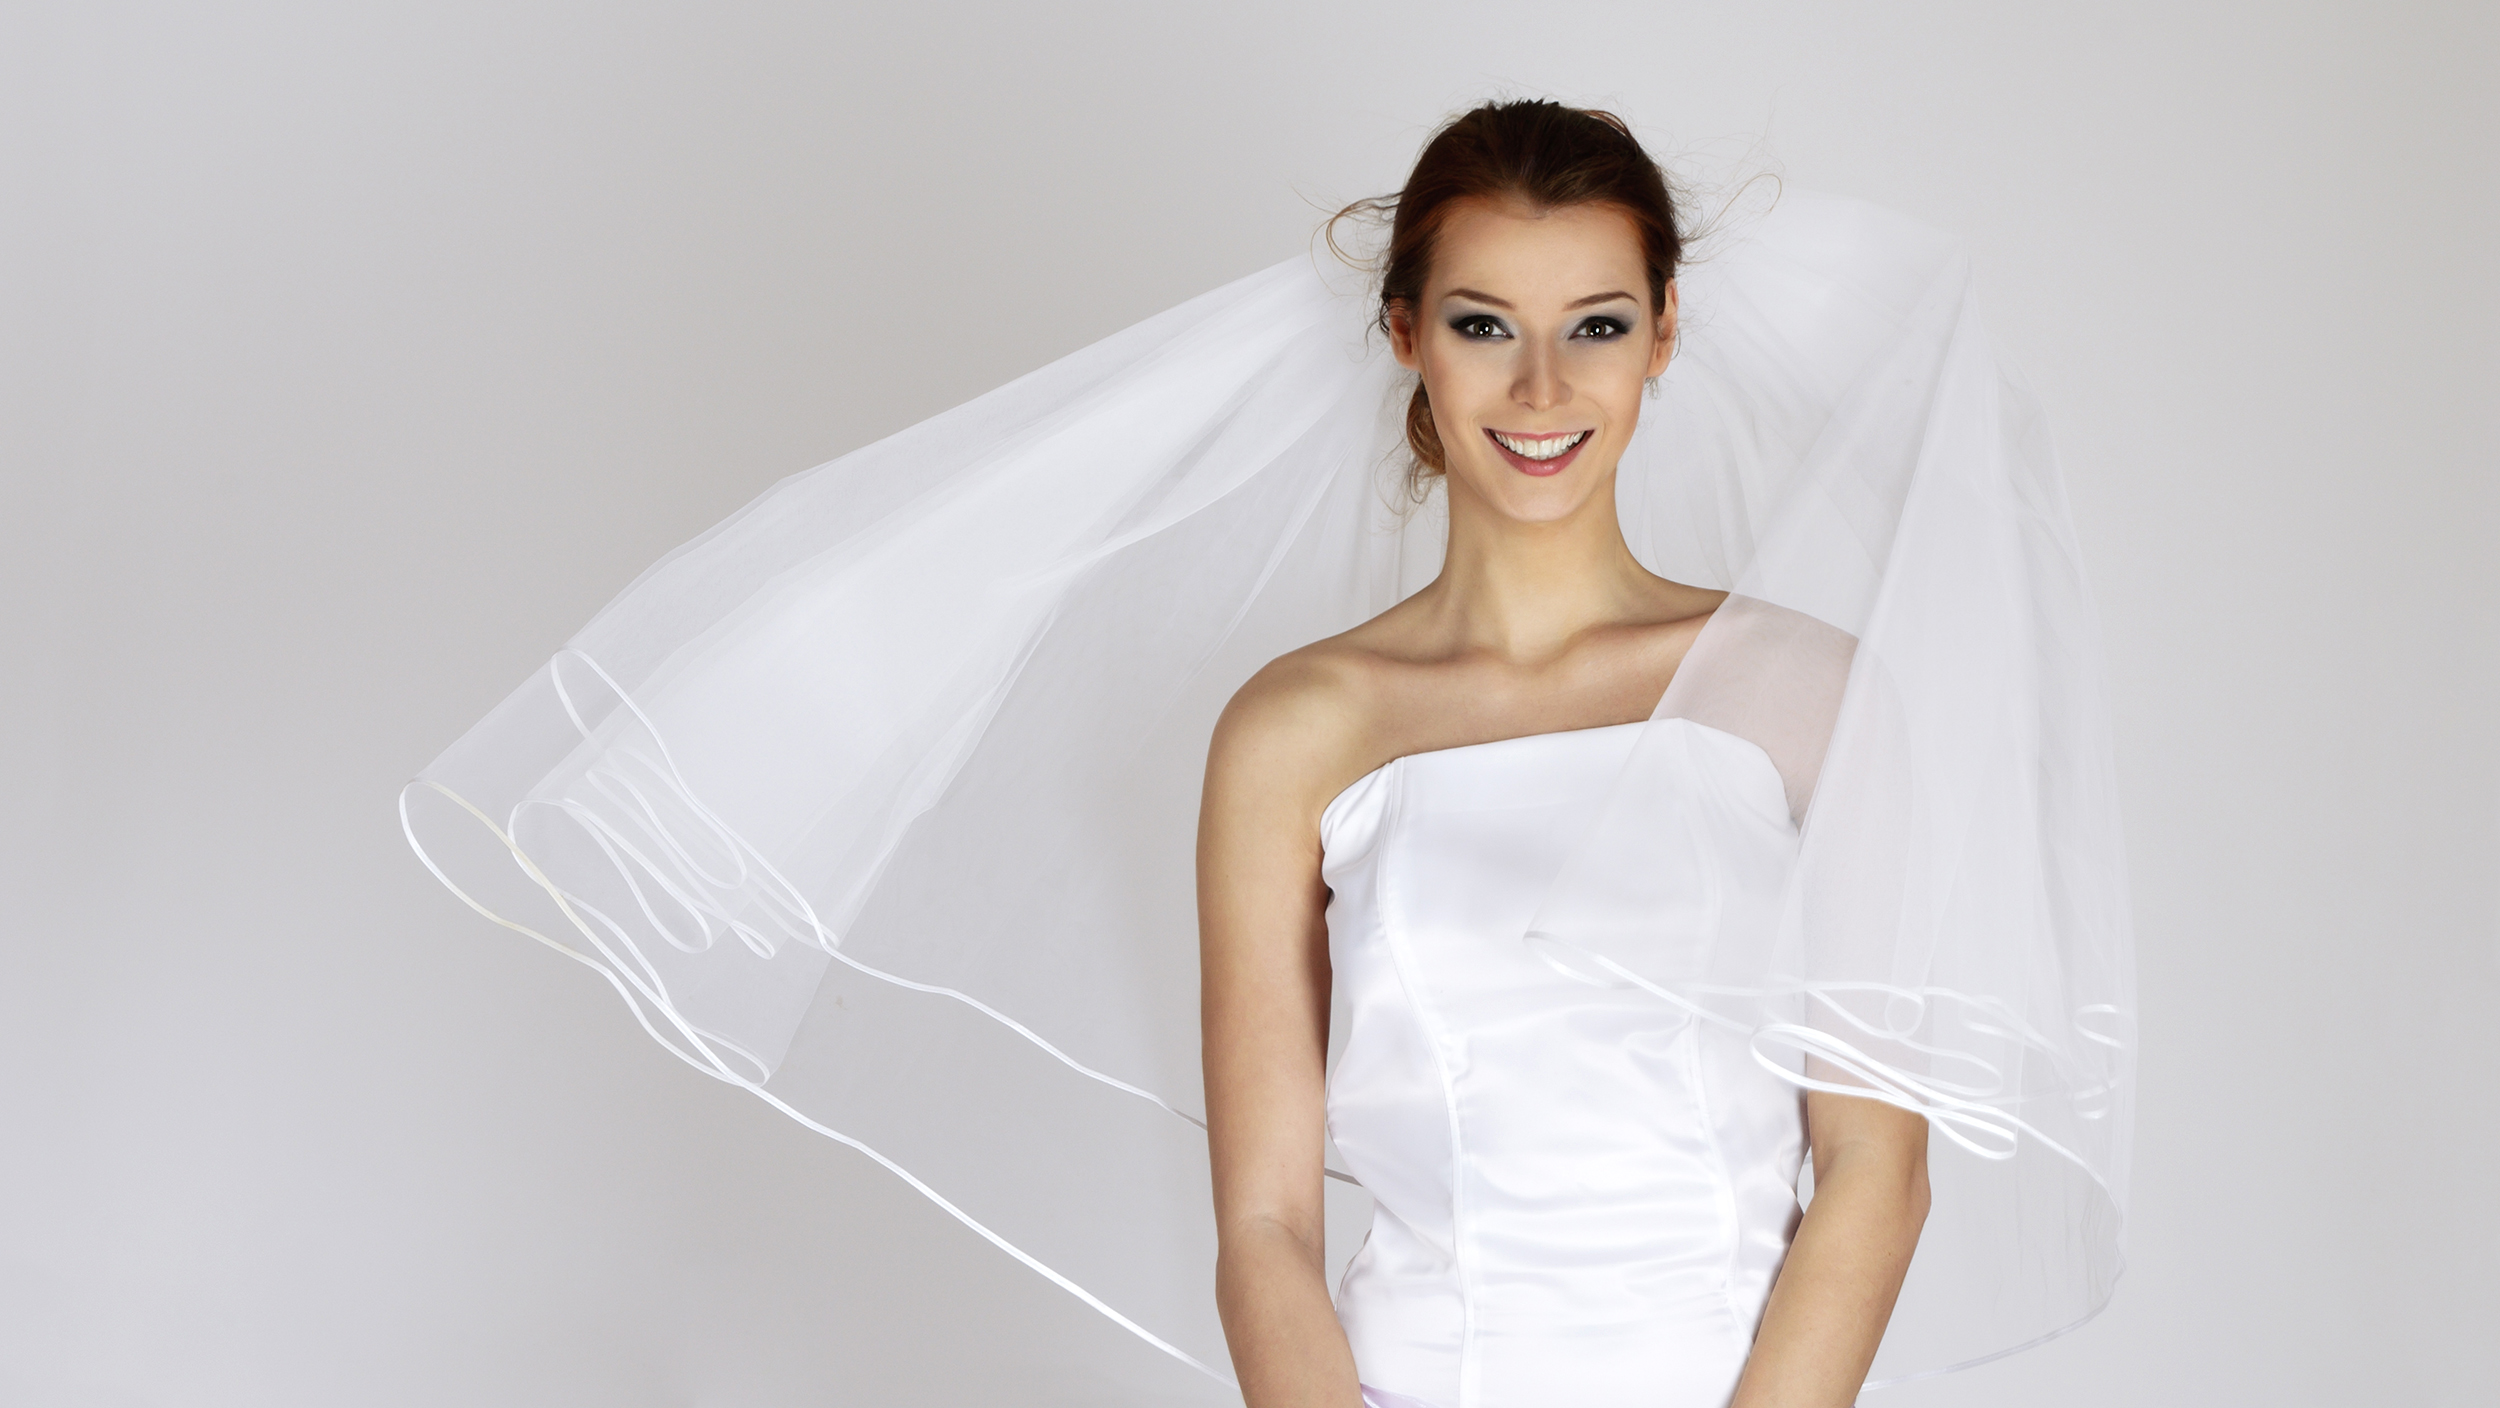 A vera wang wedding dress for 150 bucks how to find a for Once owned wedding dresses